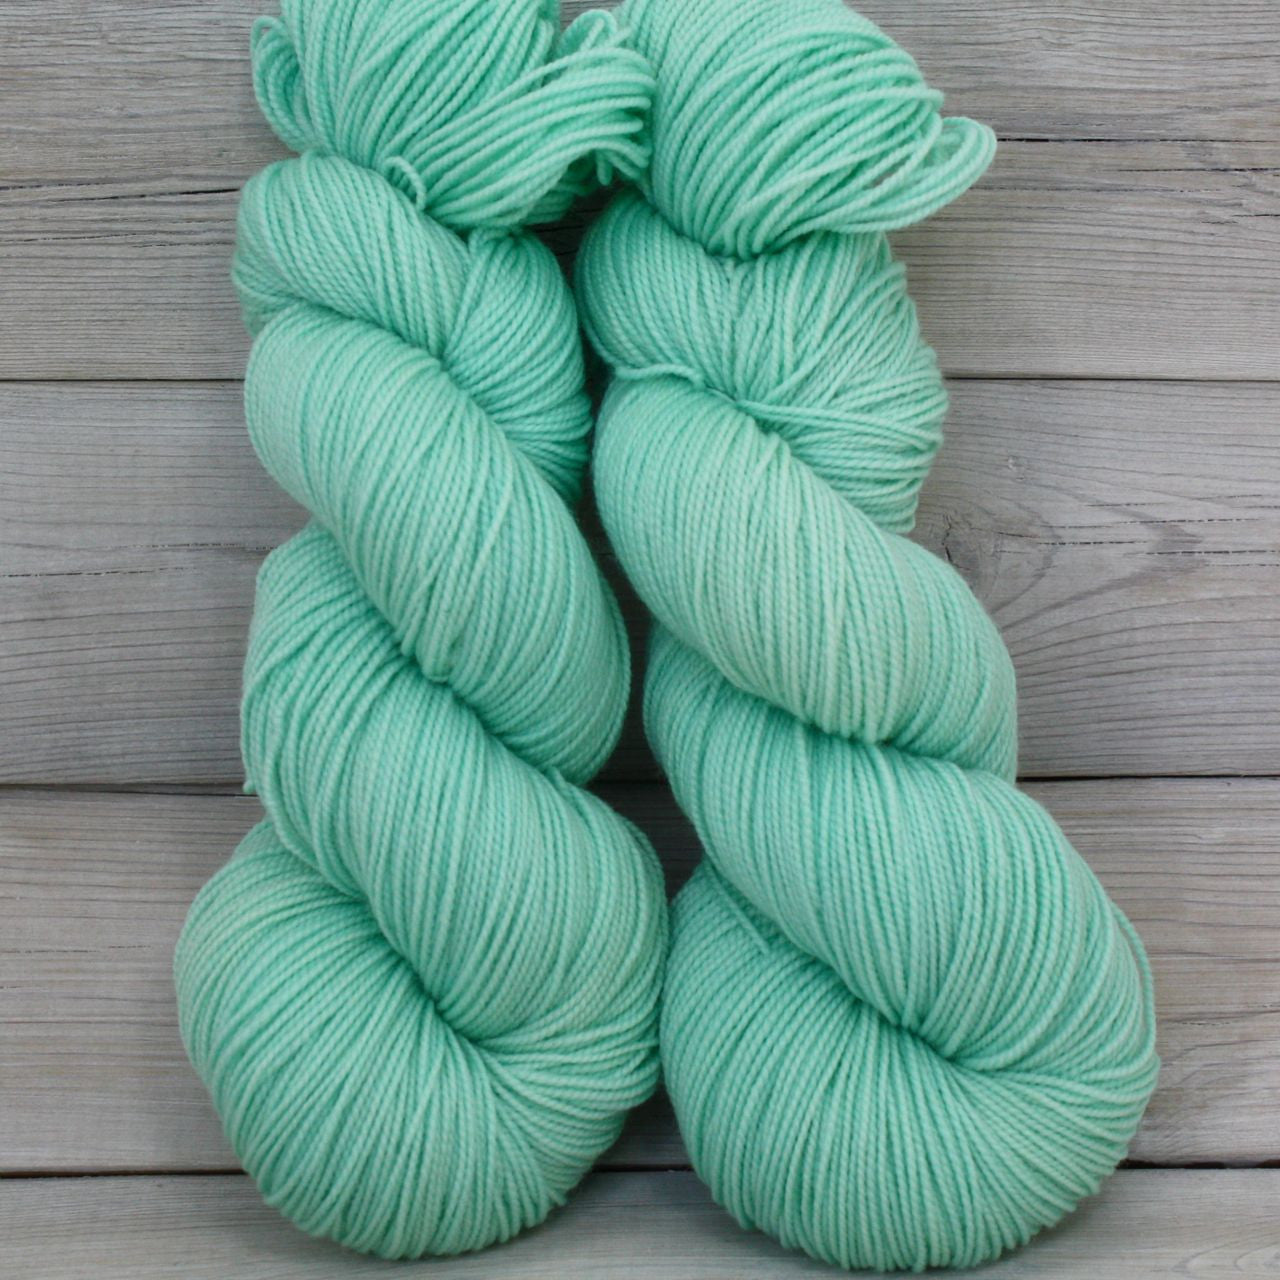 Celeste Yarn | Colorway: Glacier